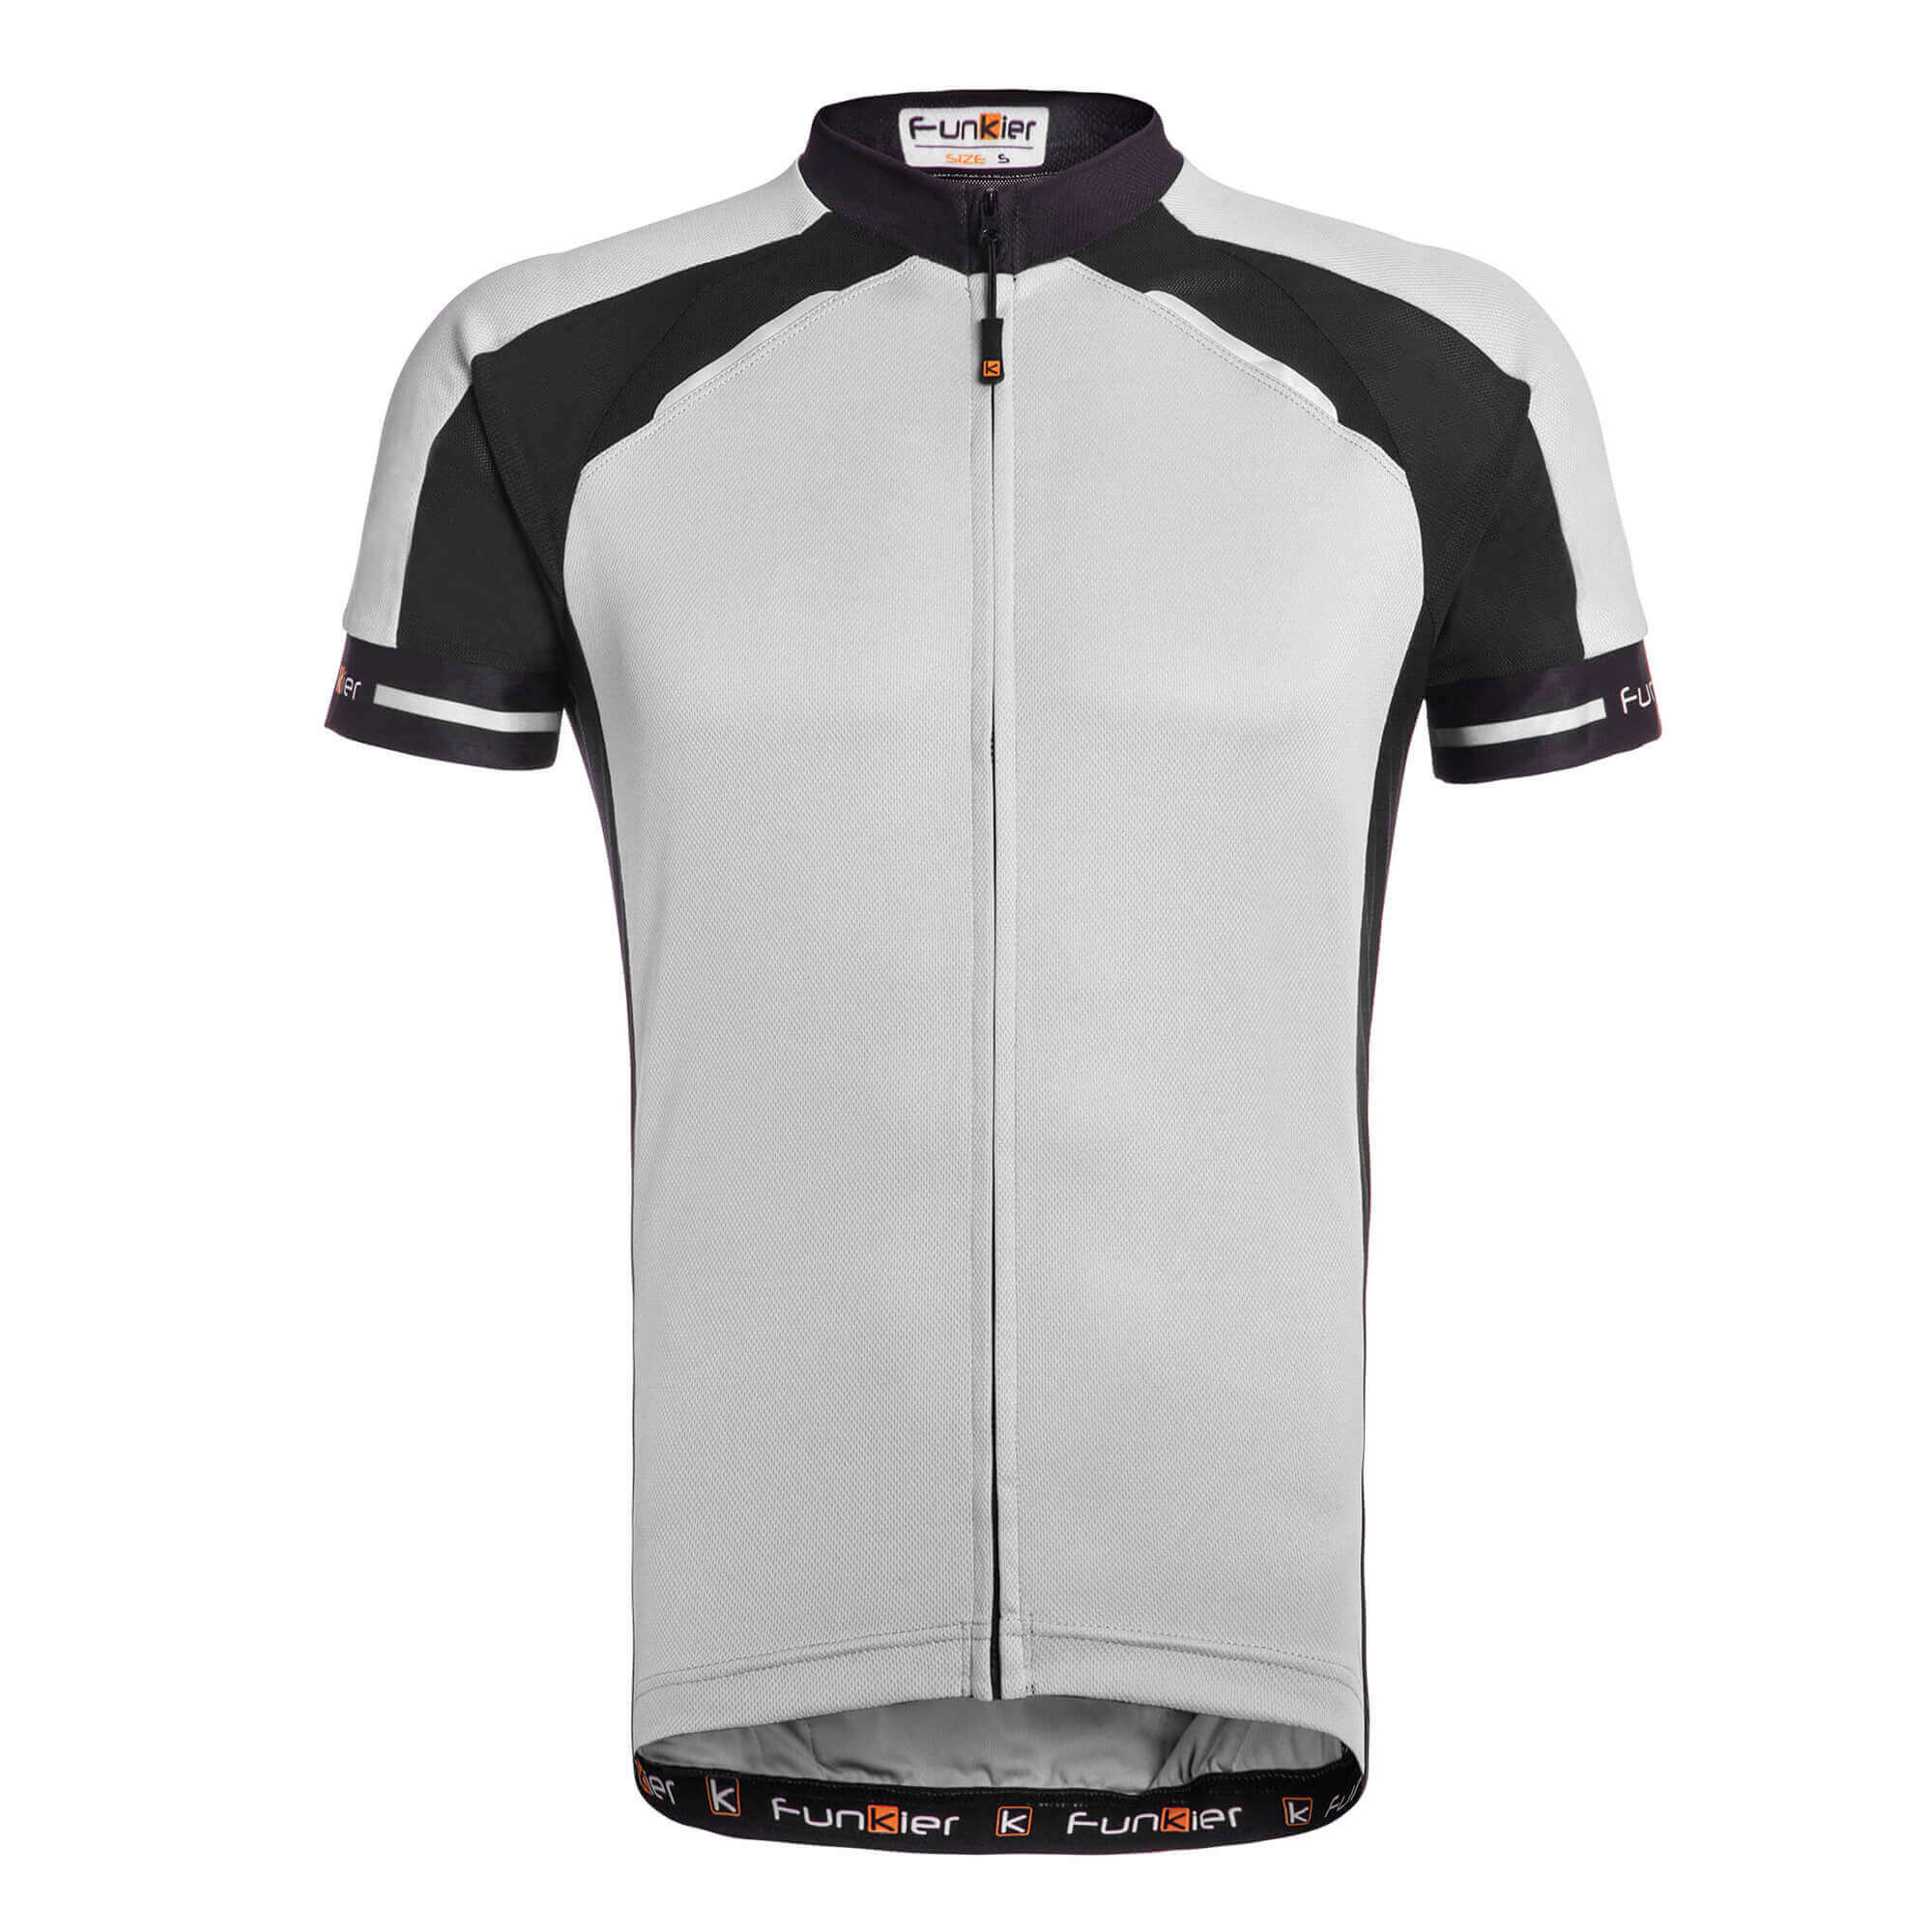 72c162ceb Funkier - High performance cycling apparel at an affordable price.